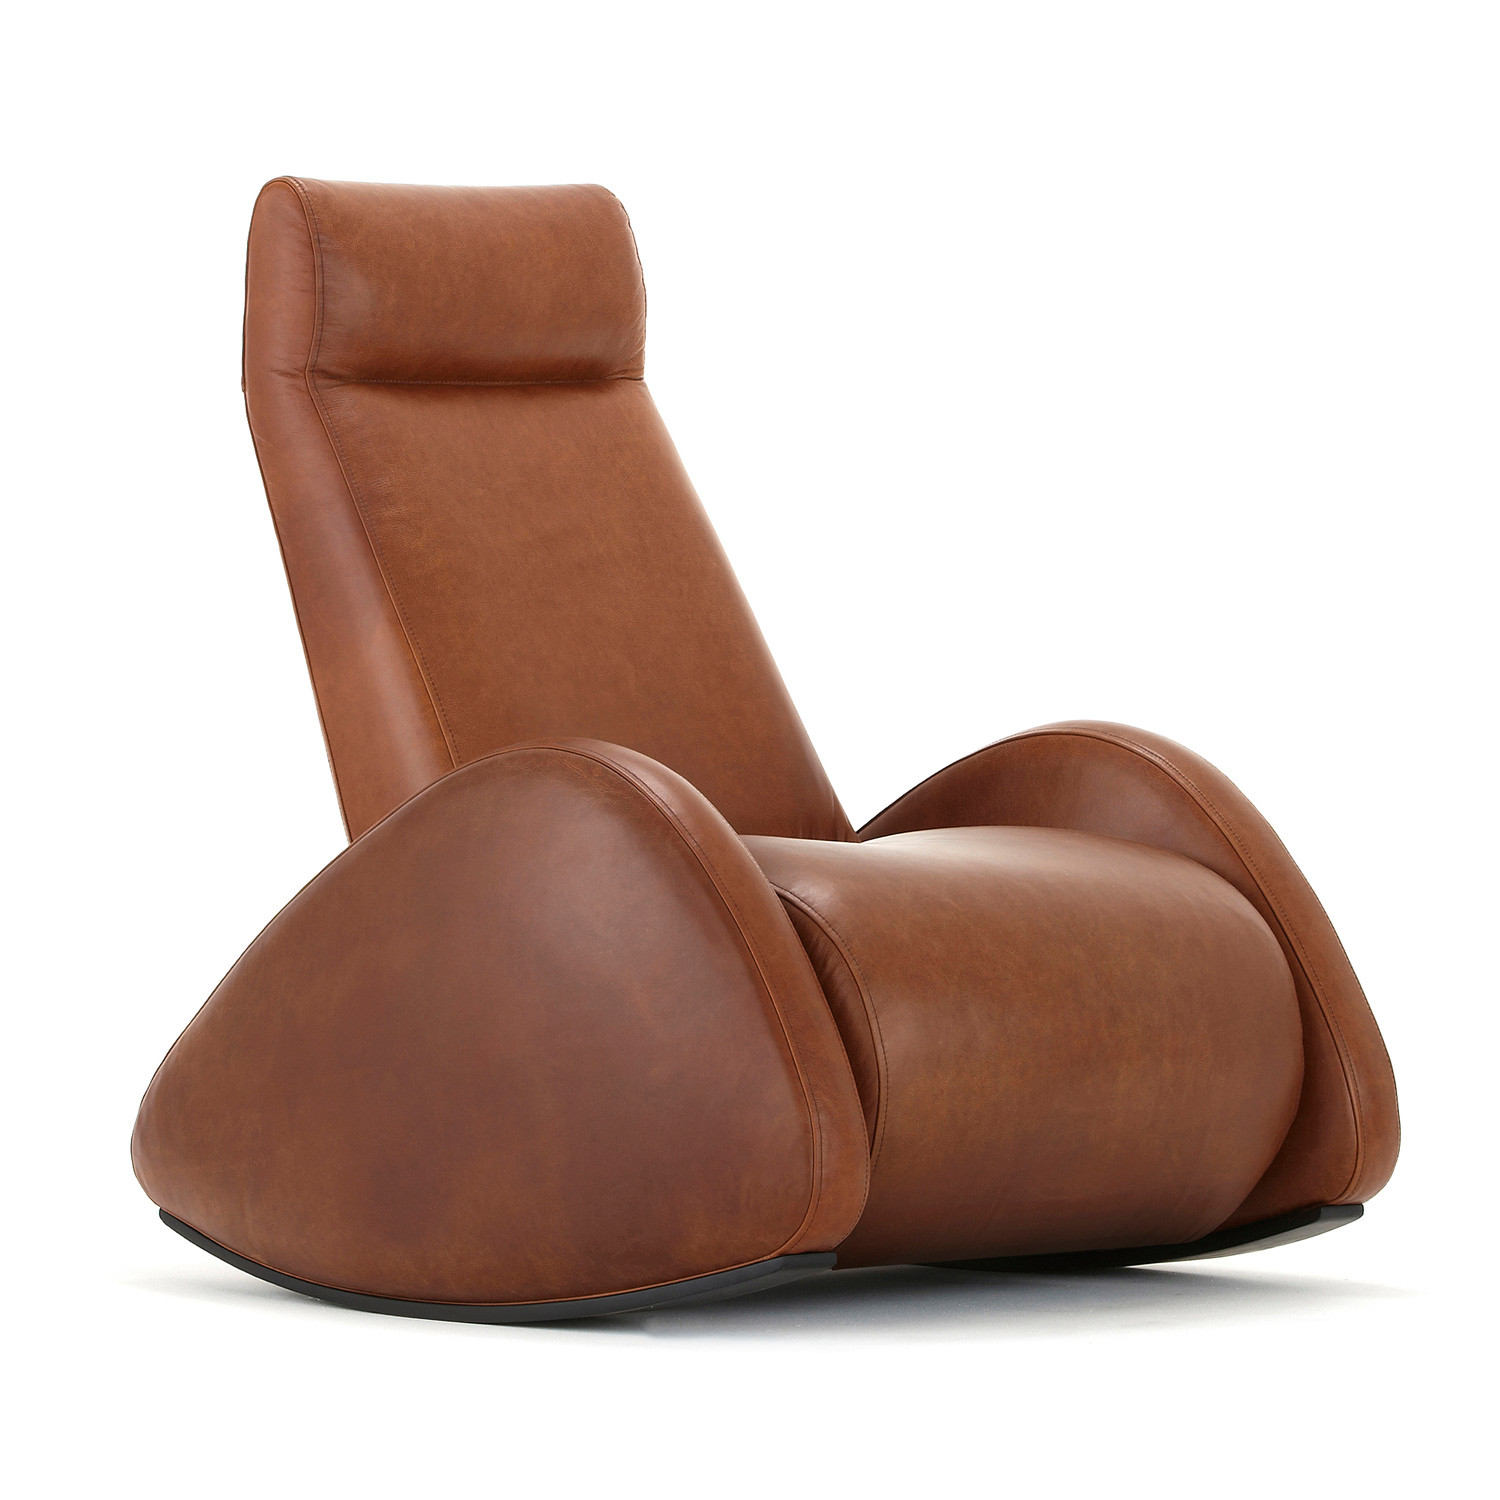 Ottens Lounge Armchair